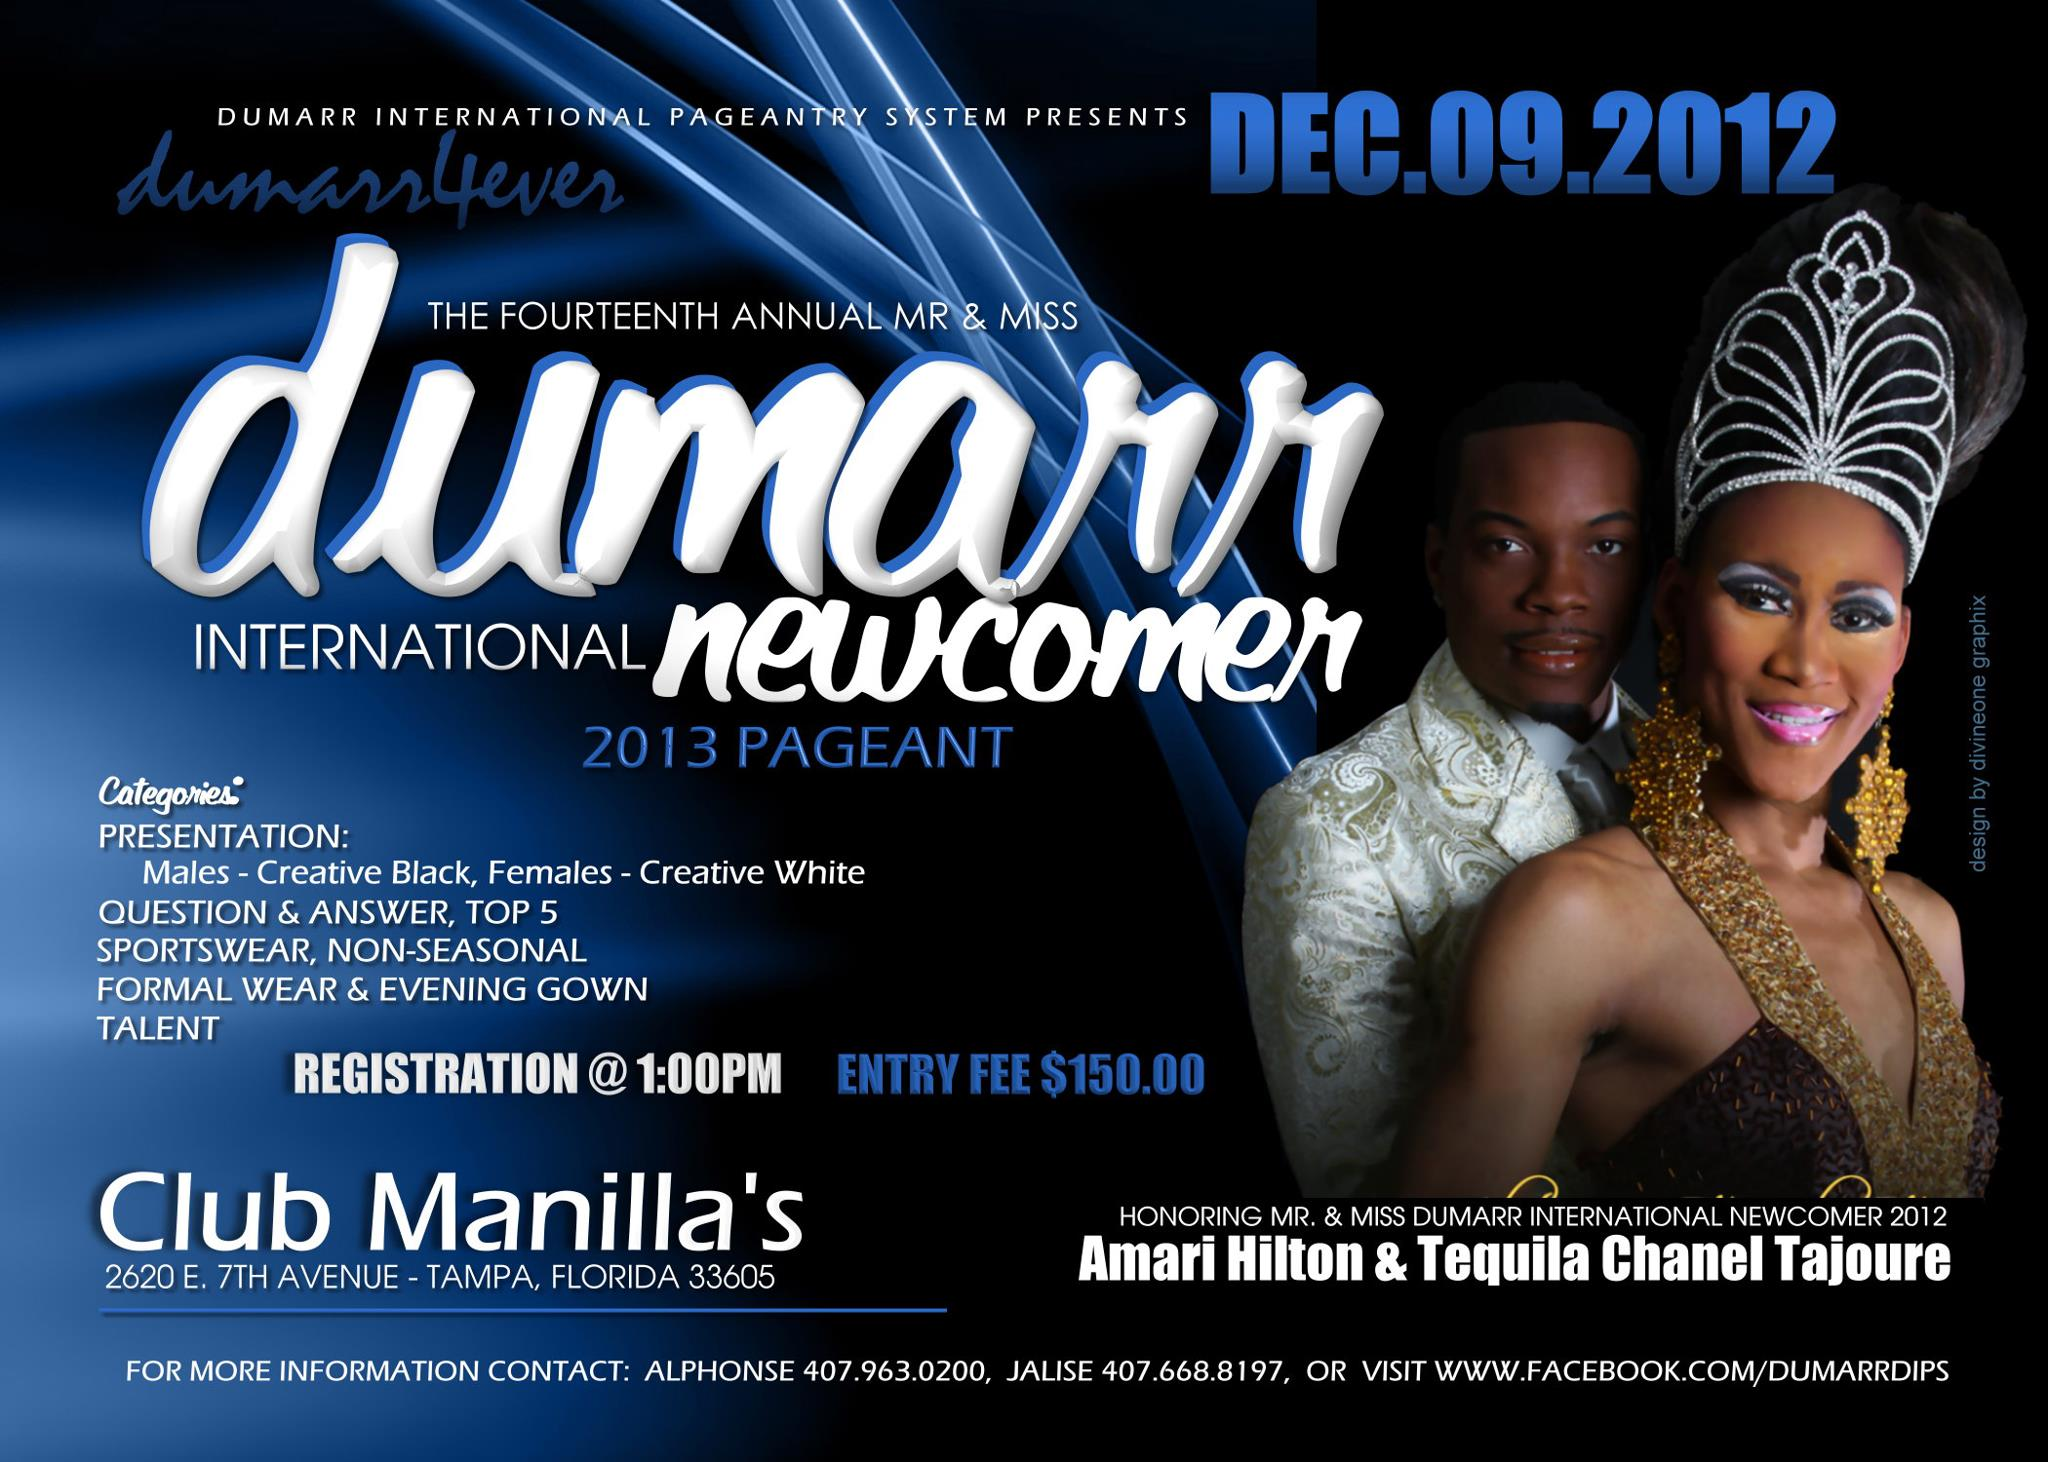 Show Ad | Mr. and Miss Dumarr International Newcomer | Club Manilla's (Tampa, Florida) | 12/9/2012